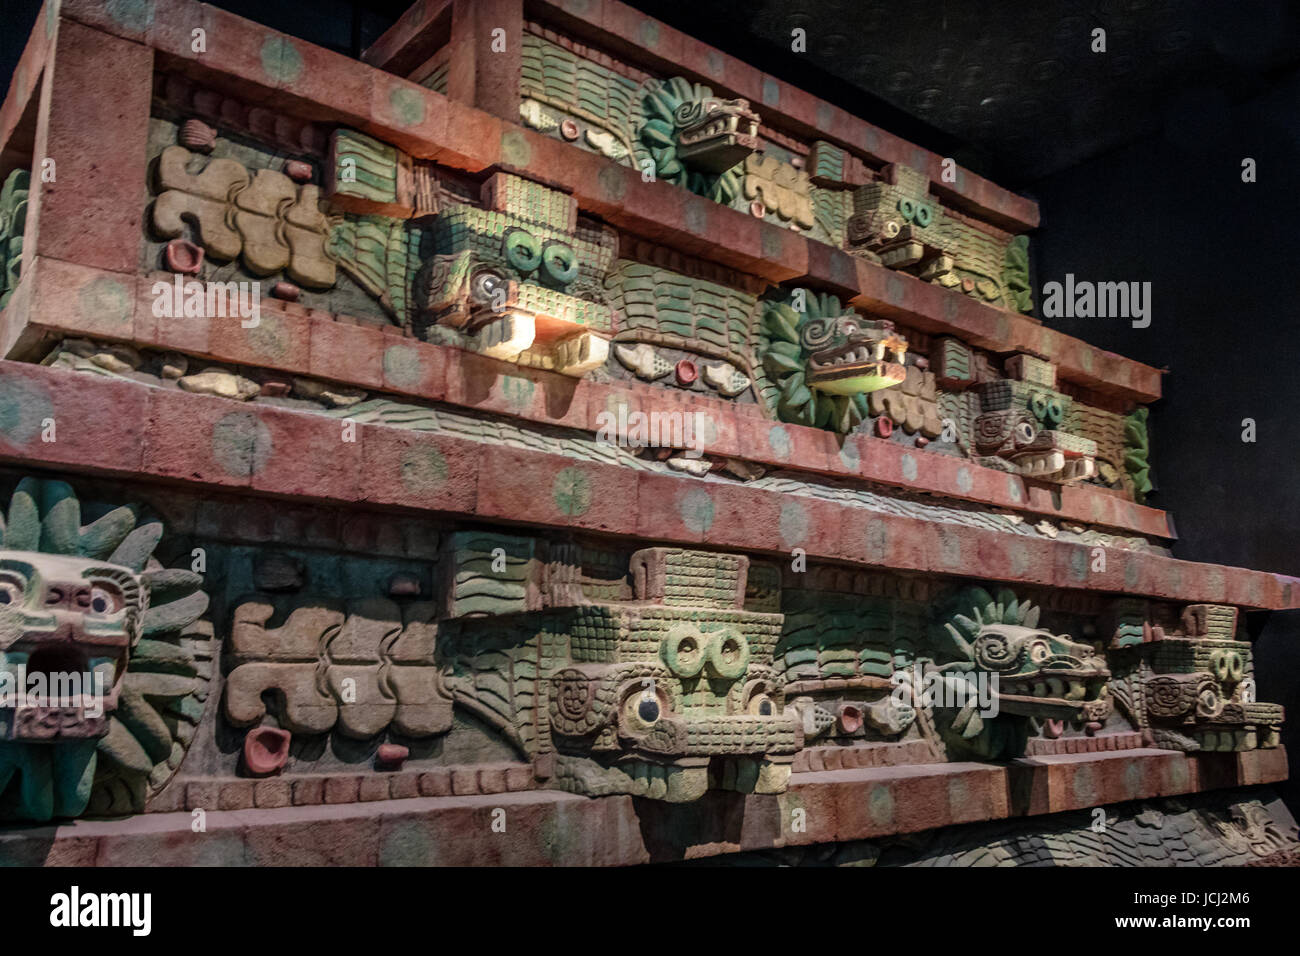 Replica of Teotihuacan Temple at National Museum of Anthropology (Museo Nacional de Antropologia, MNA) - Mexico - Stock Image